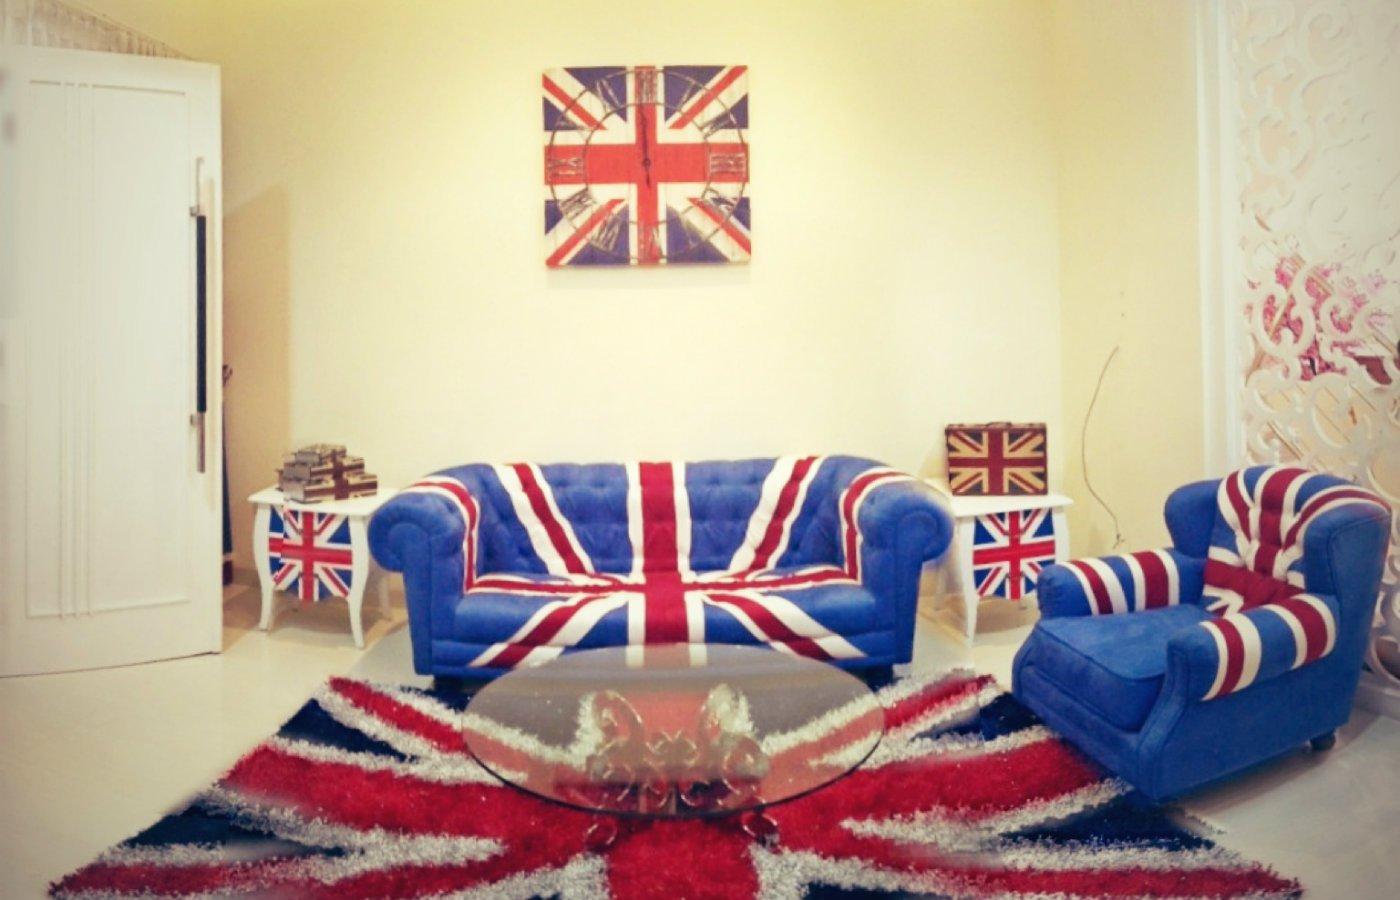 Decor Union Jack home interior .jpg